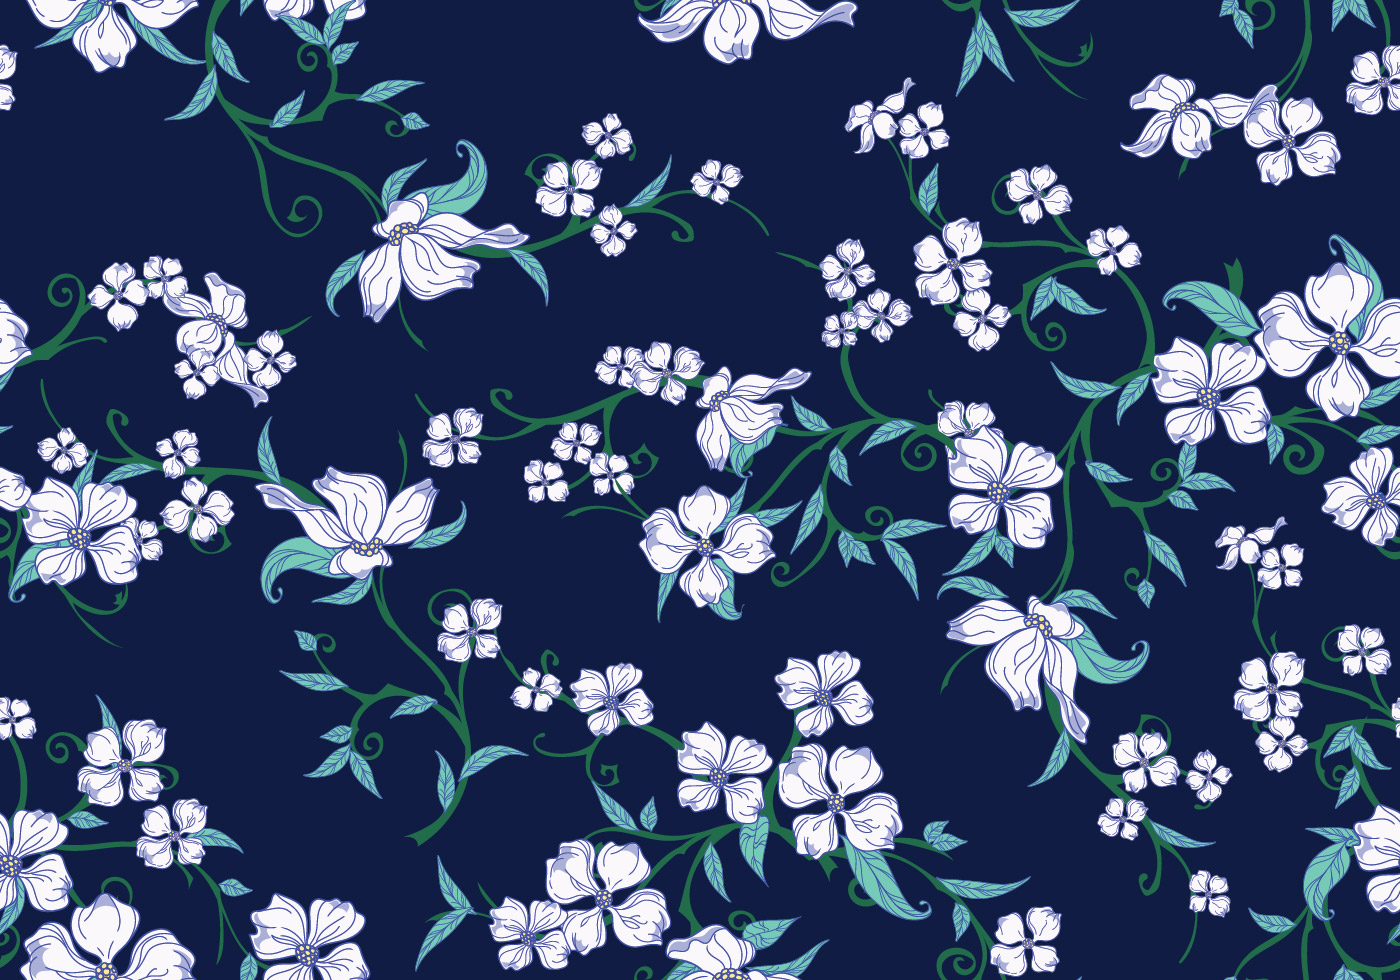 Flower Patterns Free Vector Art 58 500 Free Downloads